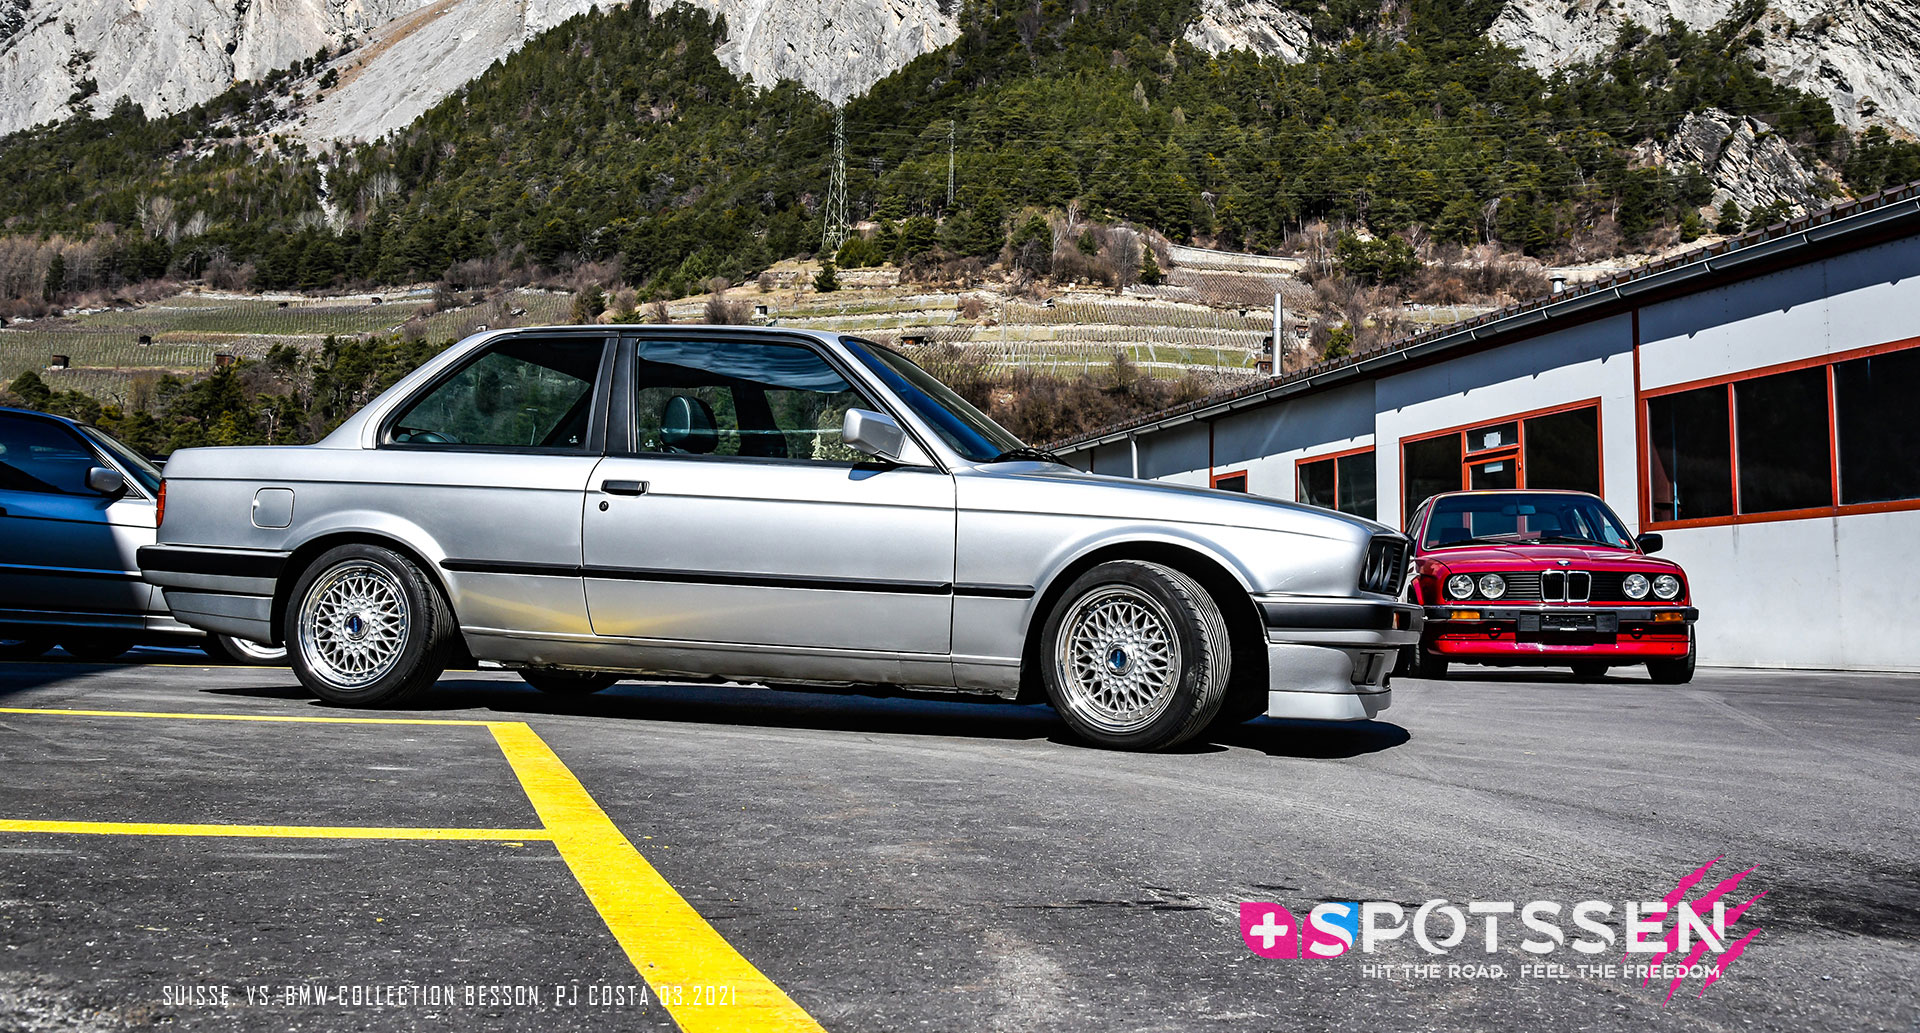 2021, bmw, collection besson, 318is